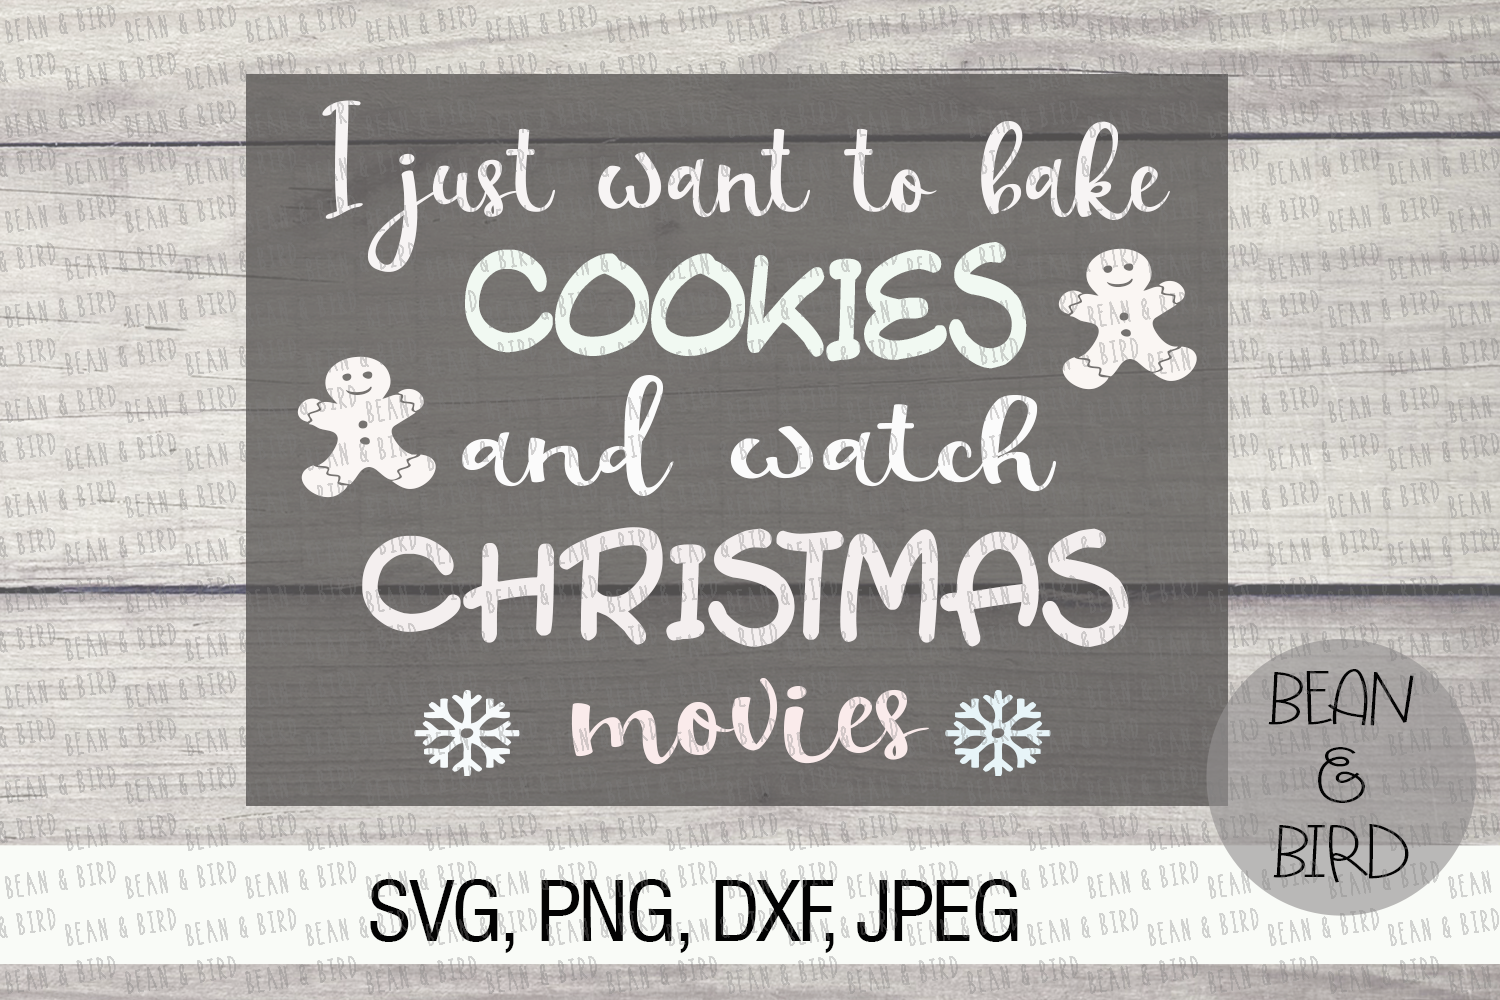 Bake Cookies and Watch Christmas Movies example image 2